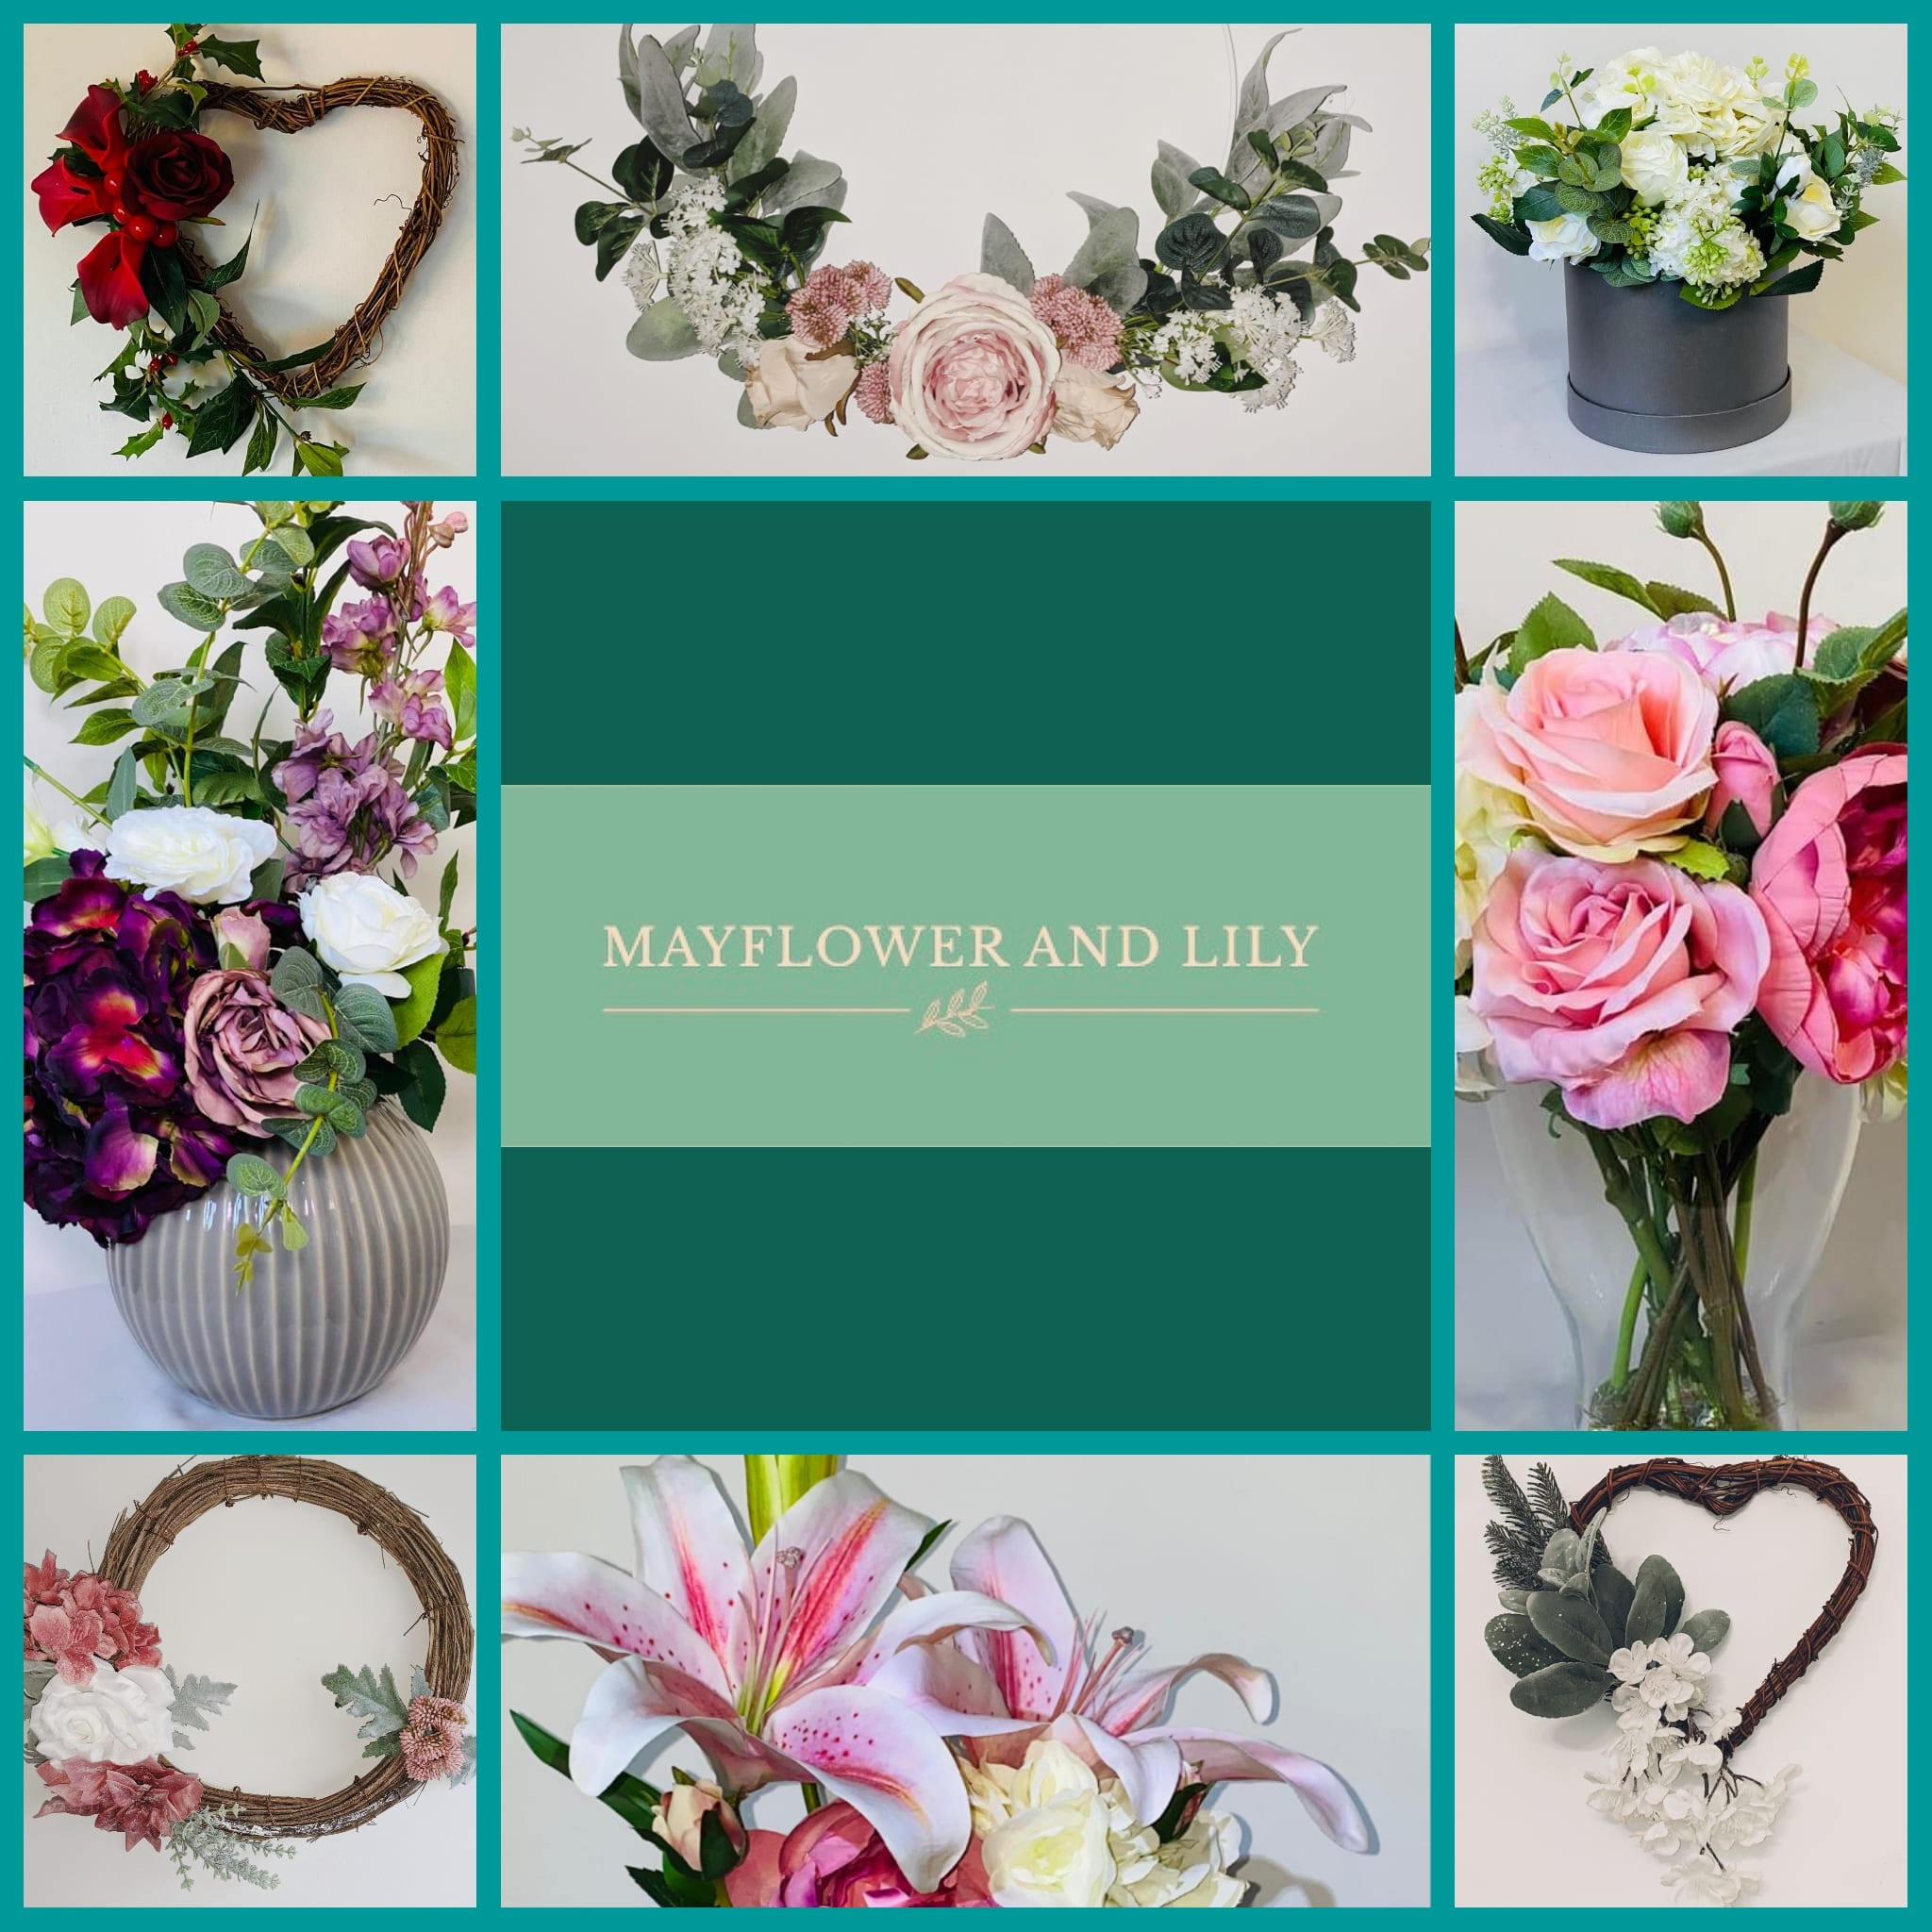 Mayflower and Lily